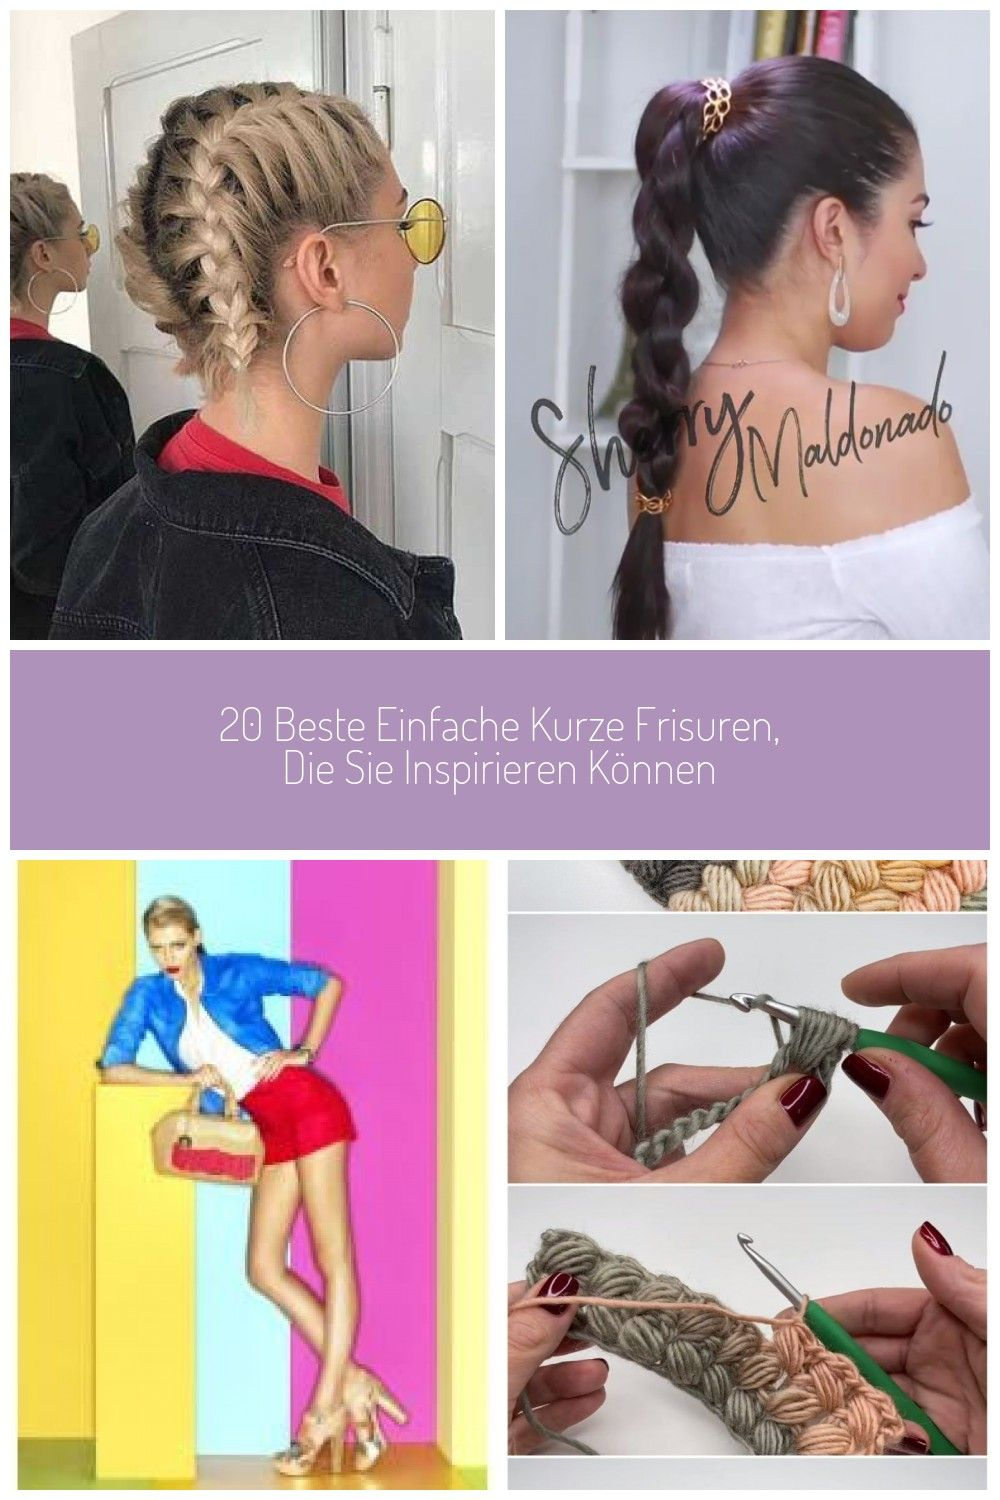 The beautiful short hairstyles we have prepared for you are impressively good The effect of short hairstyles on you will be quite a lot The photos show 20 short hairst #easy braids 20 best simple short hairstyles that can inspire youGive your ponytail a subtle touch with this super easy braiding method! braidsbraiding3dbraidroundbraidbraidhairhairstylehairtutorialvideotutorialshophudabeautyhudabeautyanadtasiabeverlyhillsLeather handbagsCrochet blankets beginner How To C